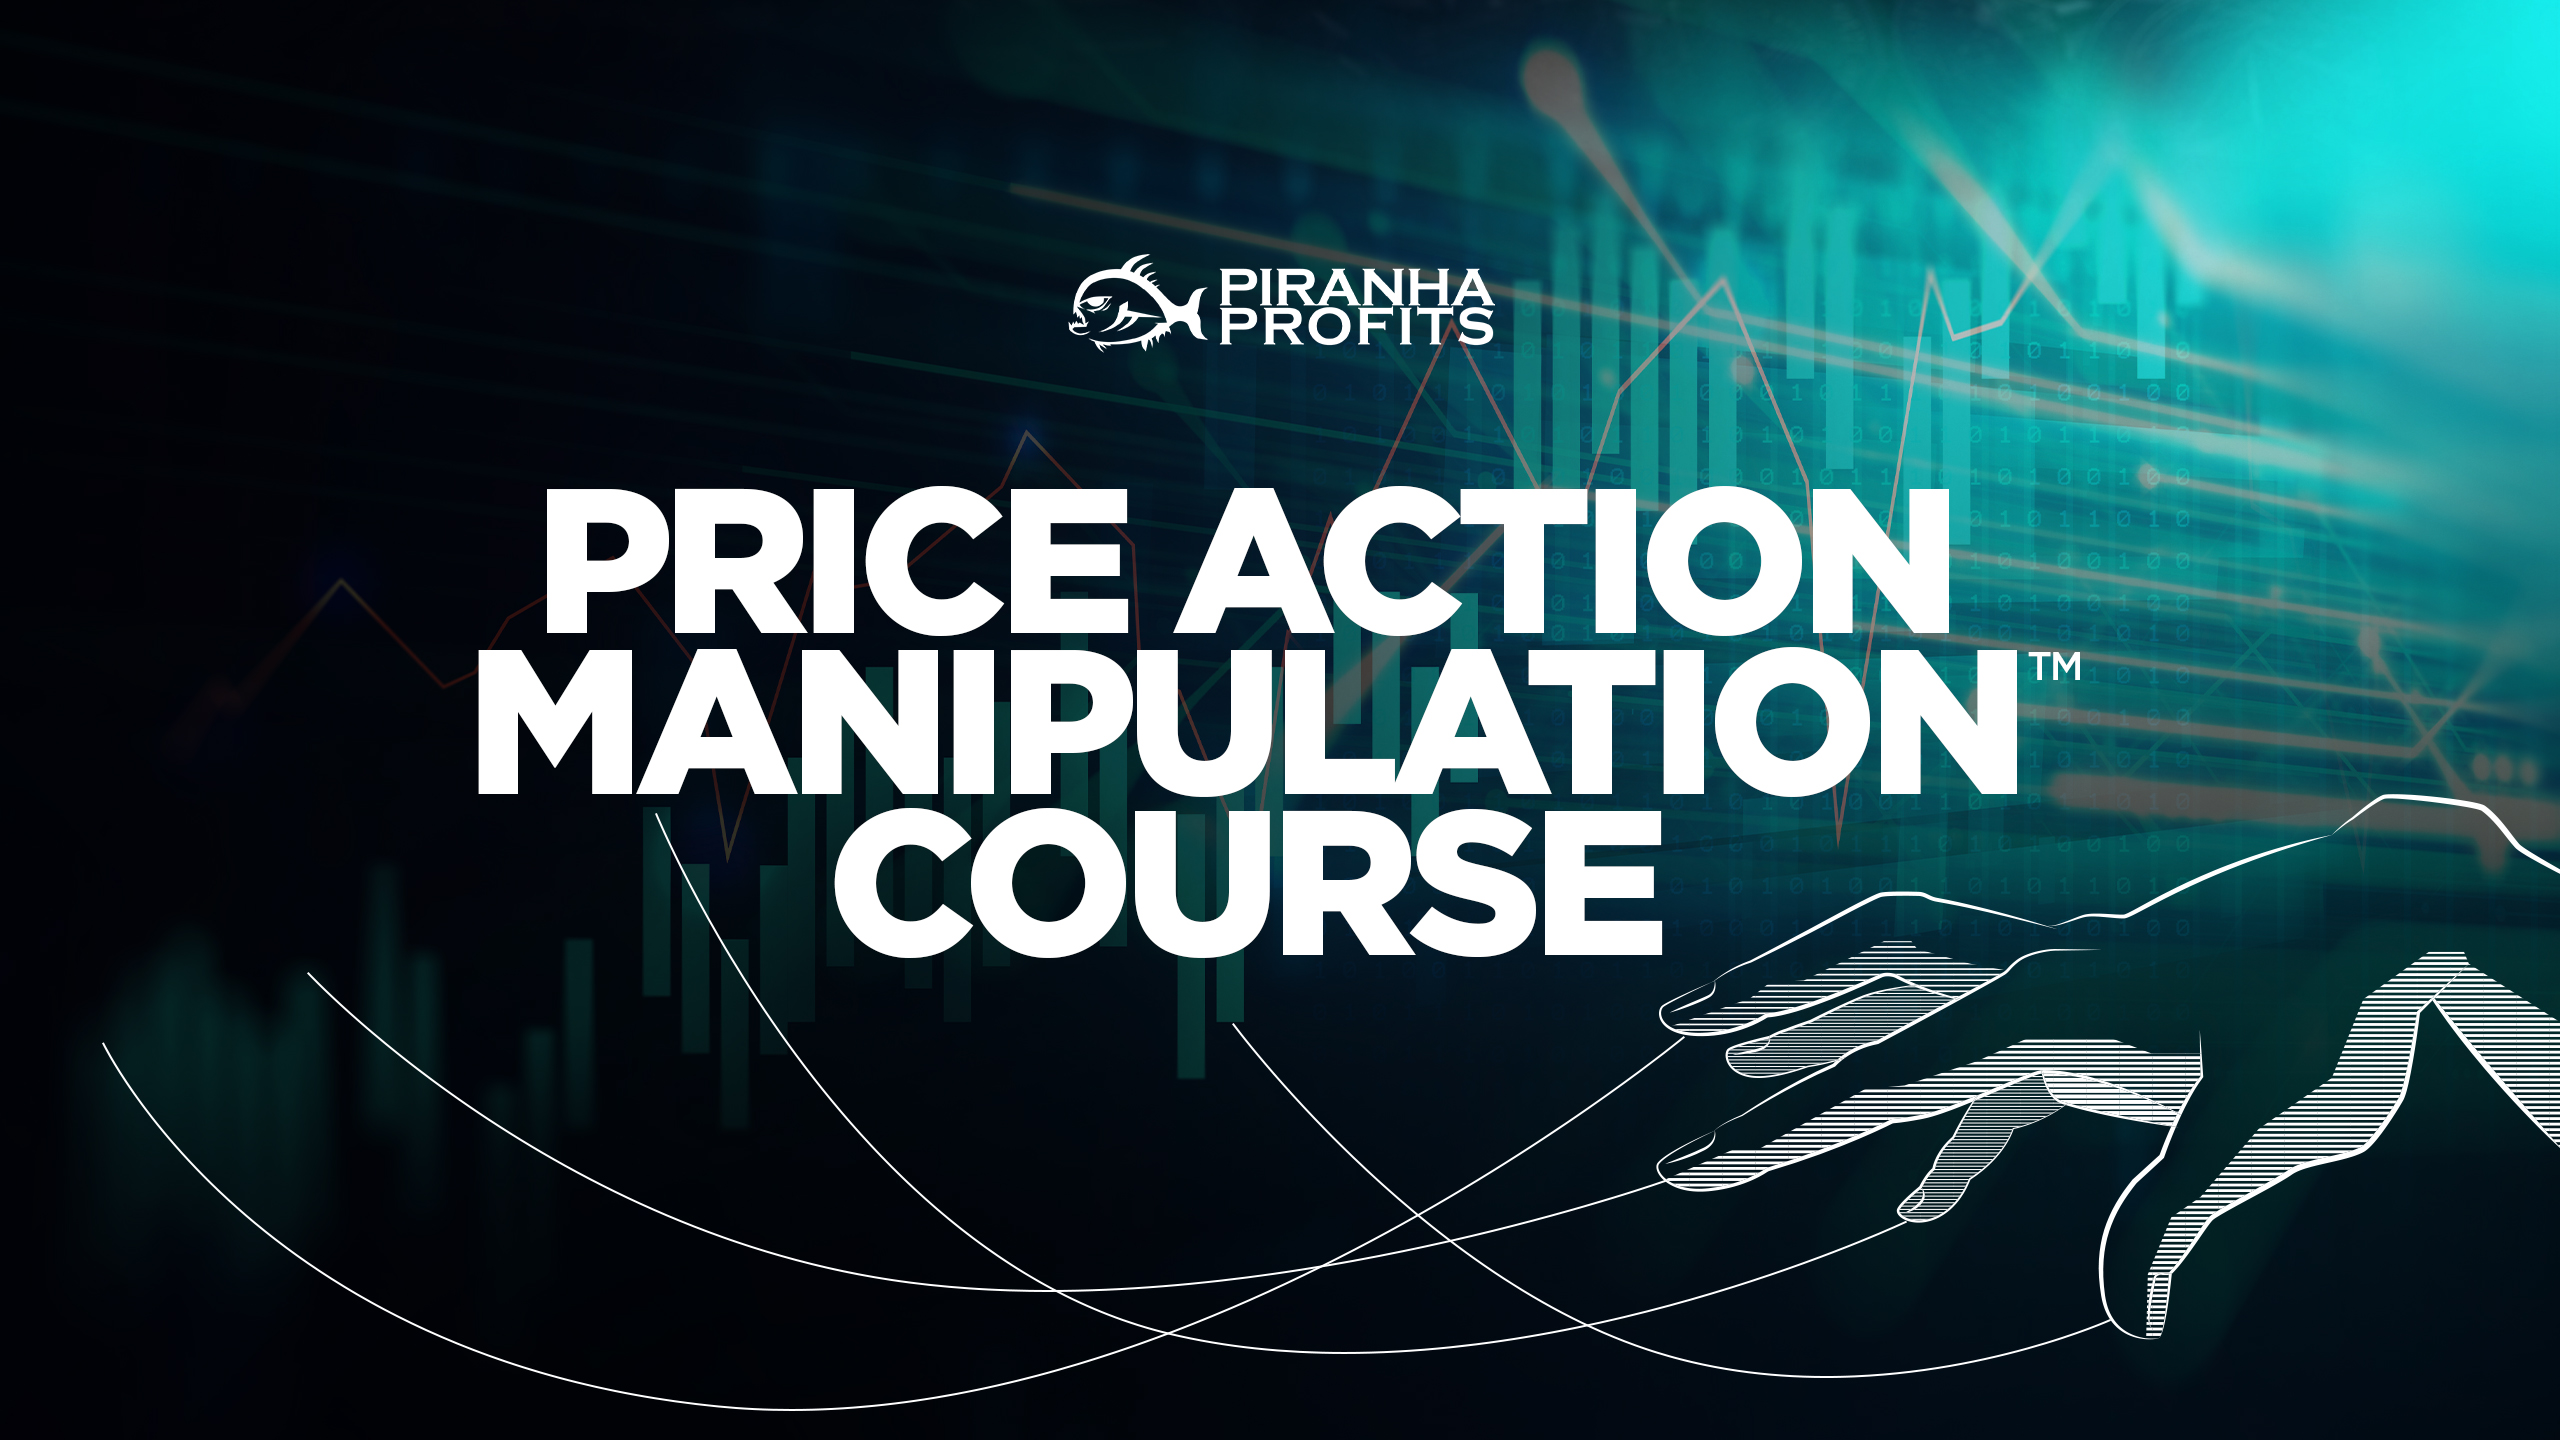 Price Action Manipulation Course banner